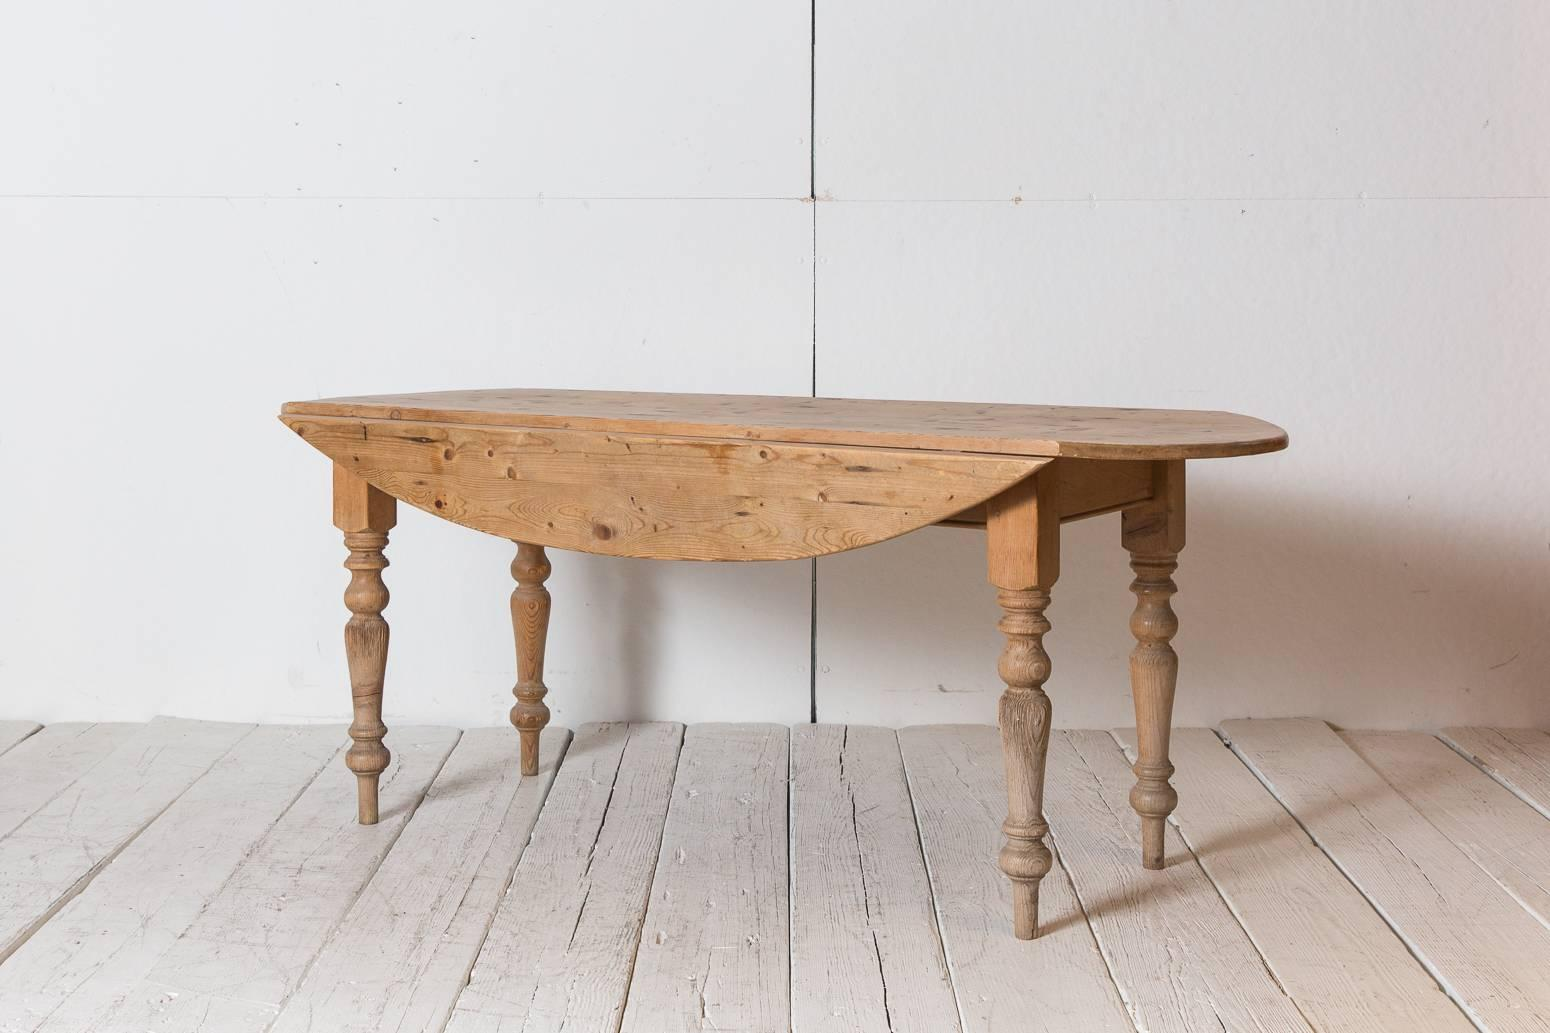 Mid 20th Century French Pine Drop Leaf Table With Spindle Legs For Sale